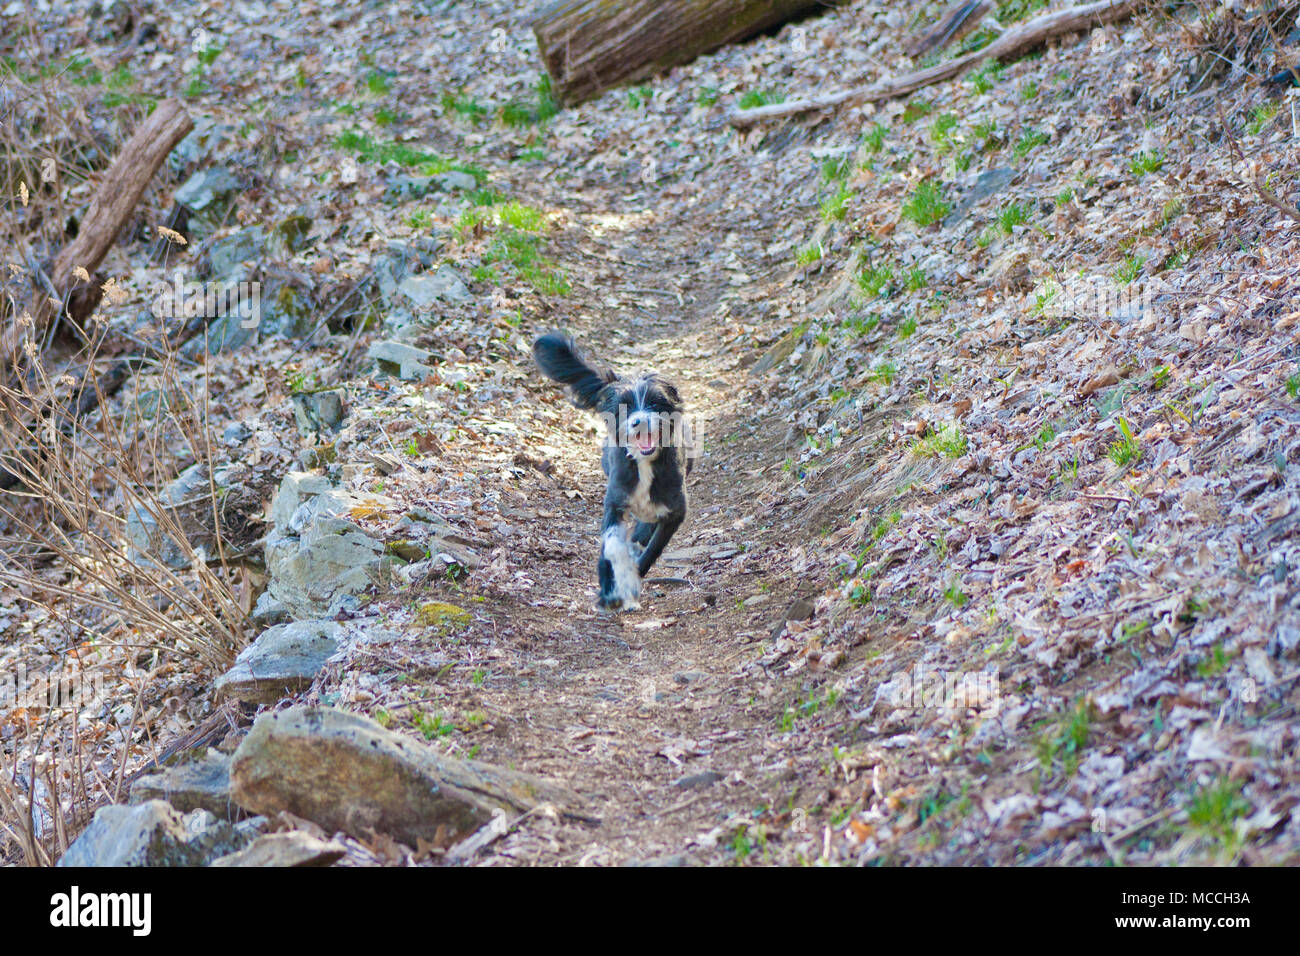 Black and white fuzzy pup runs free in the forest trail - Stock Image